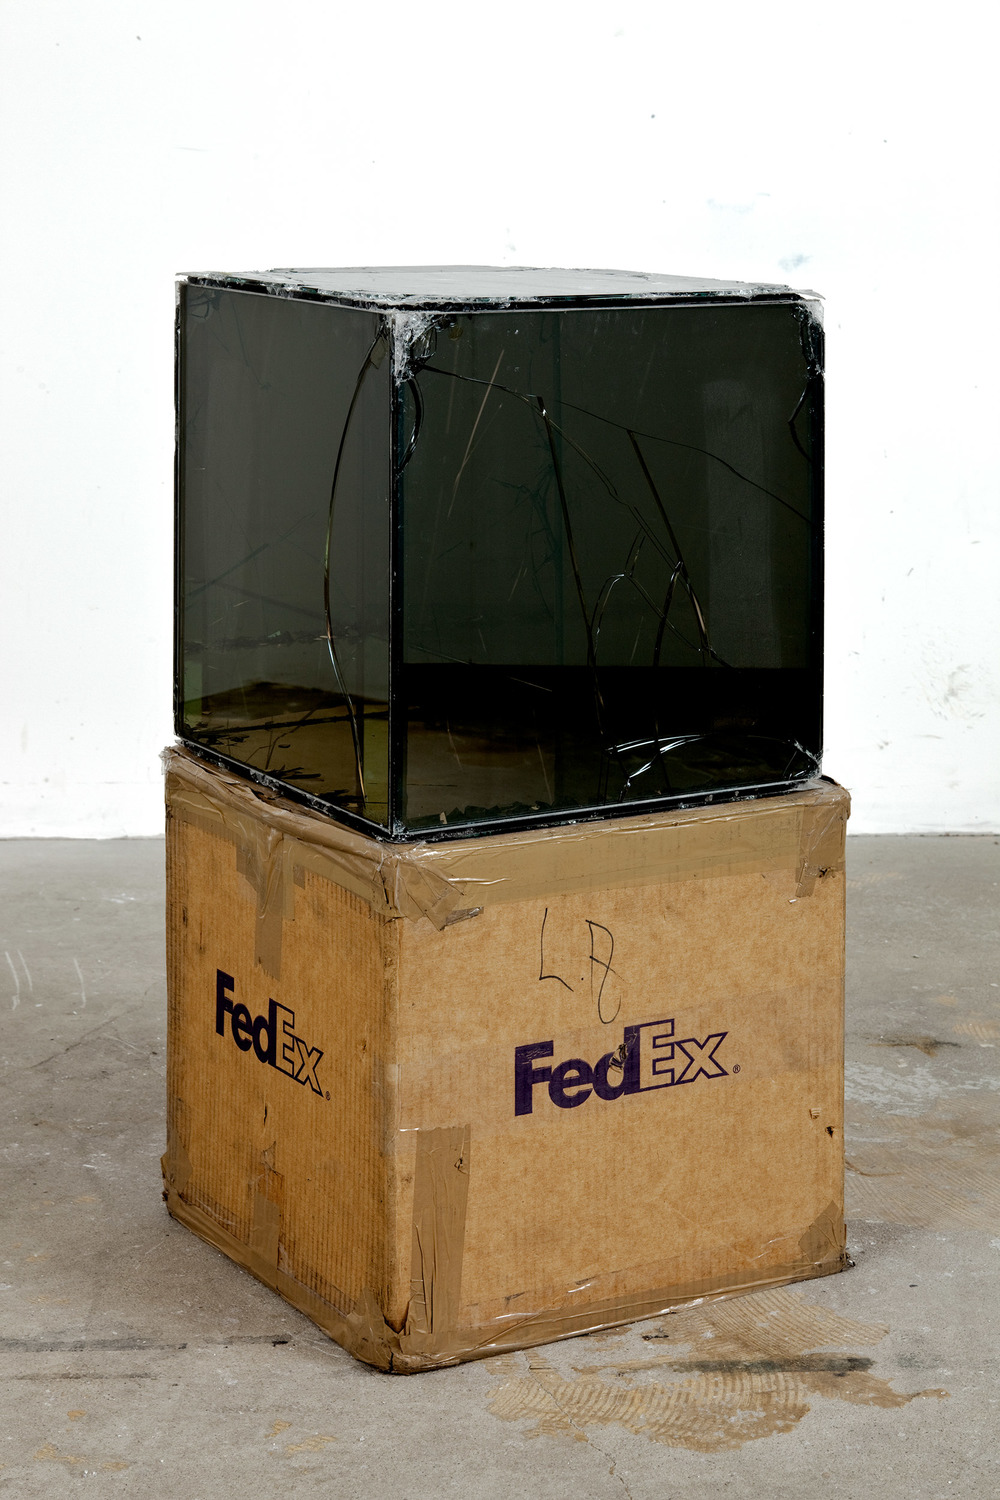 FedEx® Kraft Box  © 2005 FEDEX 330504 10/05 SSCC, Priority Overnight, Los Angeles–Miami trk#865344981314, October 29–30, 2008, Priority Overnight, Miami–Los Angeles trk#861049125089, November 17–18, 2008, Priority Overnight, Los Angeles-Miami Beach trk#860147611241, December 01–02, 2008, Priority Overnight, Miami–Los Angeles trk#867525901310, December 08–09, 2008, Priority Overnight, Los Angeles–Ann Arbor trk#867525901228, March 09–10, 2009, Standard Overnight, Ann Arbor–Los Angeles trk#868274625705, July 09–10, 2009, Standard Overnight, Los Angeles–San Francisco trk#870069766460, August 27–28, 2009, Standard Overnight, San Francisco–Los Angeles trk#870342520112, November 12–13, 2009   2008  Laminated Mirropane, FedEx shipping box, accrued FedEx shipping and tracking labels, silicone, metal, and tape  16 x 16 x 16 inches   Pulley, Cogwheels, Mirrors, and Windows, 2009